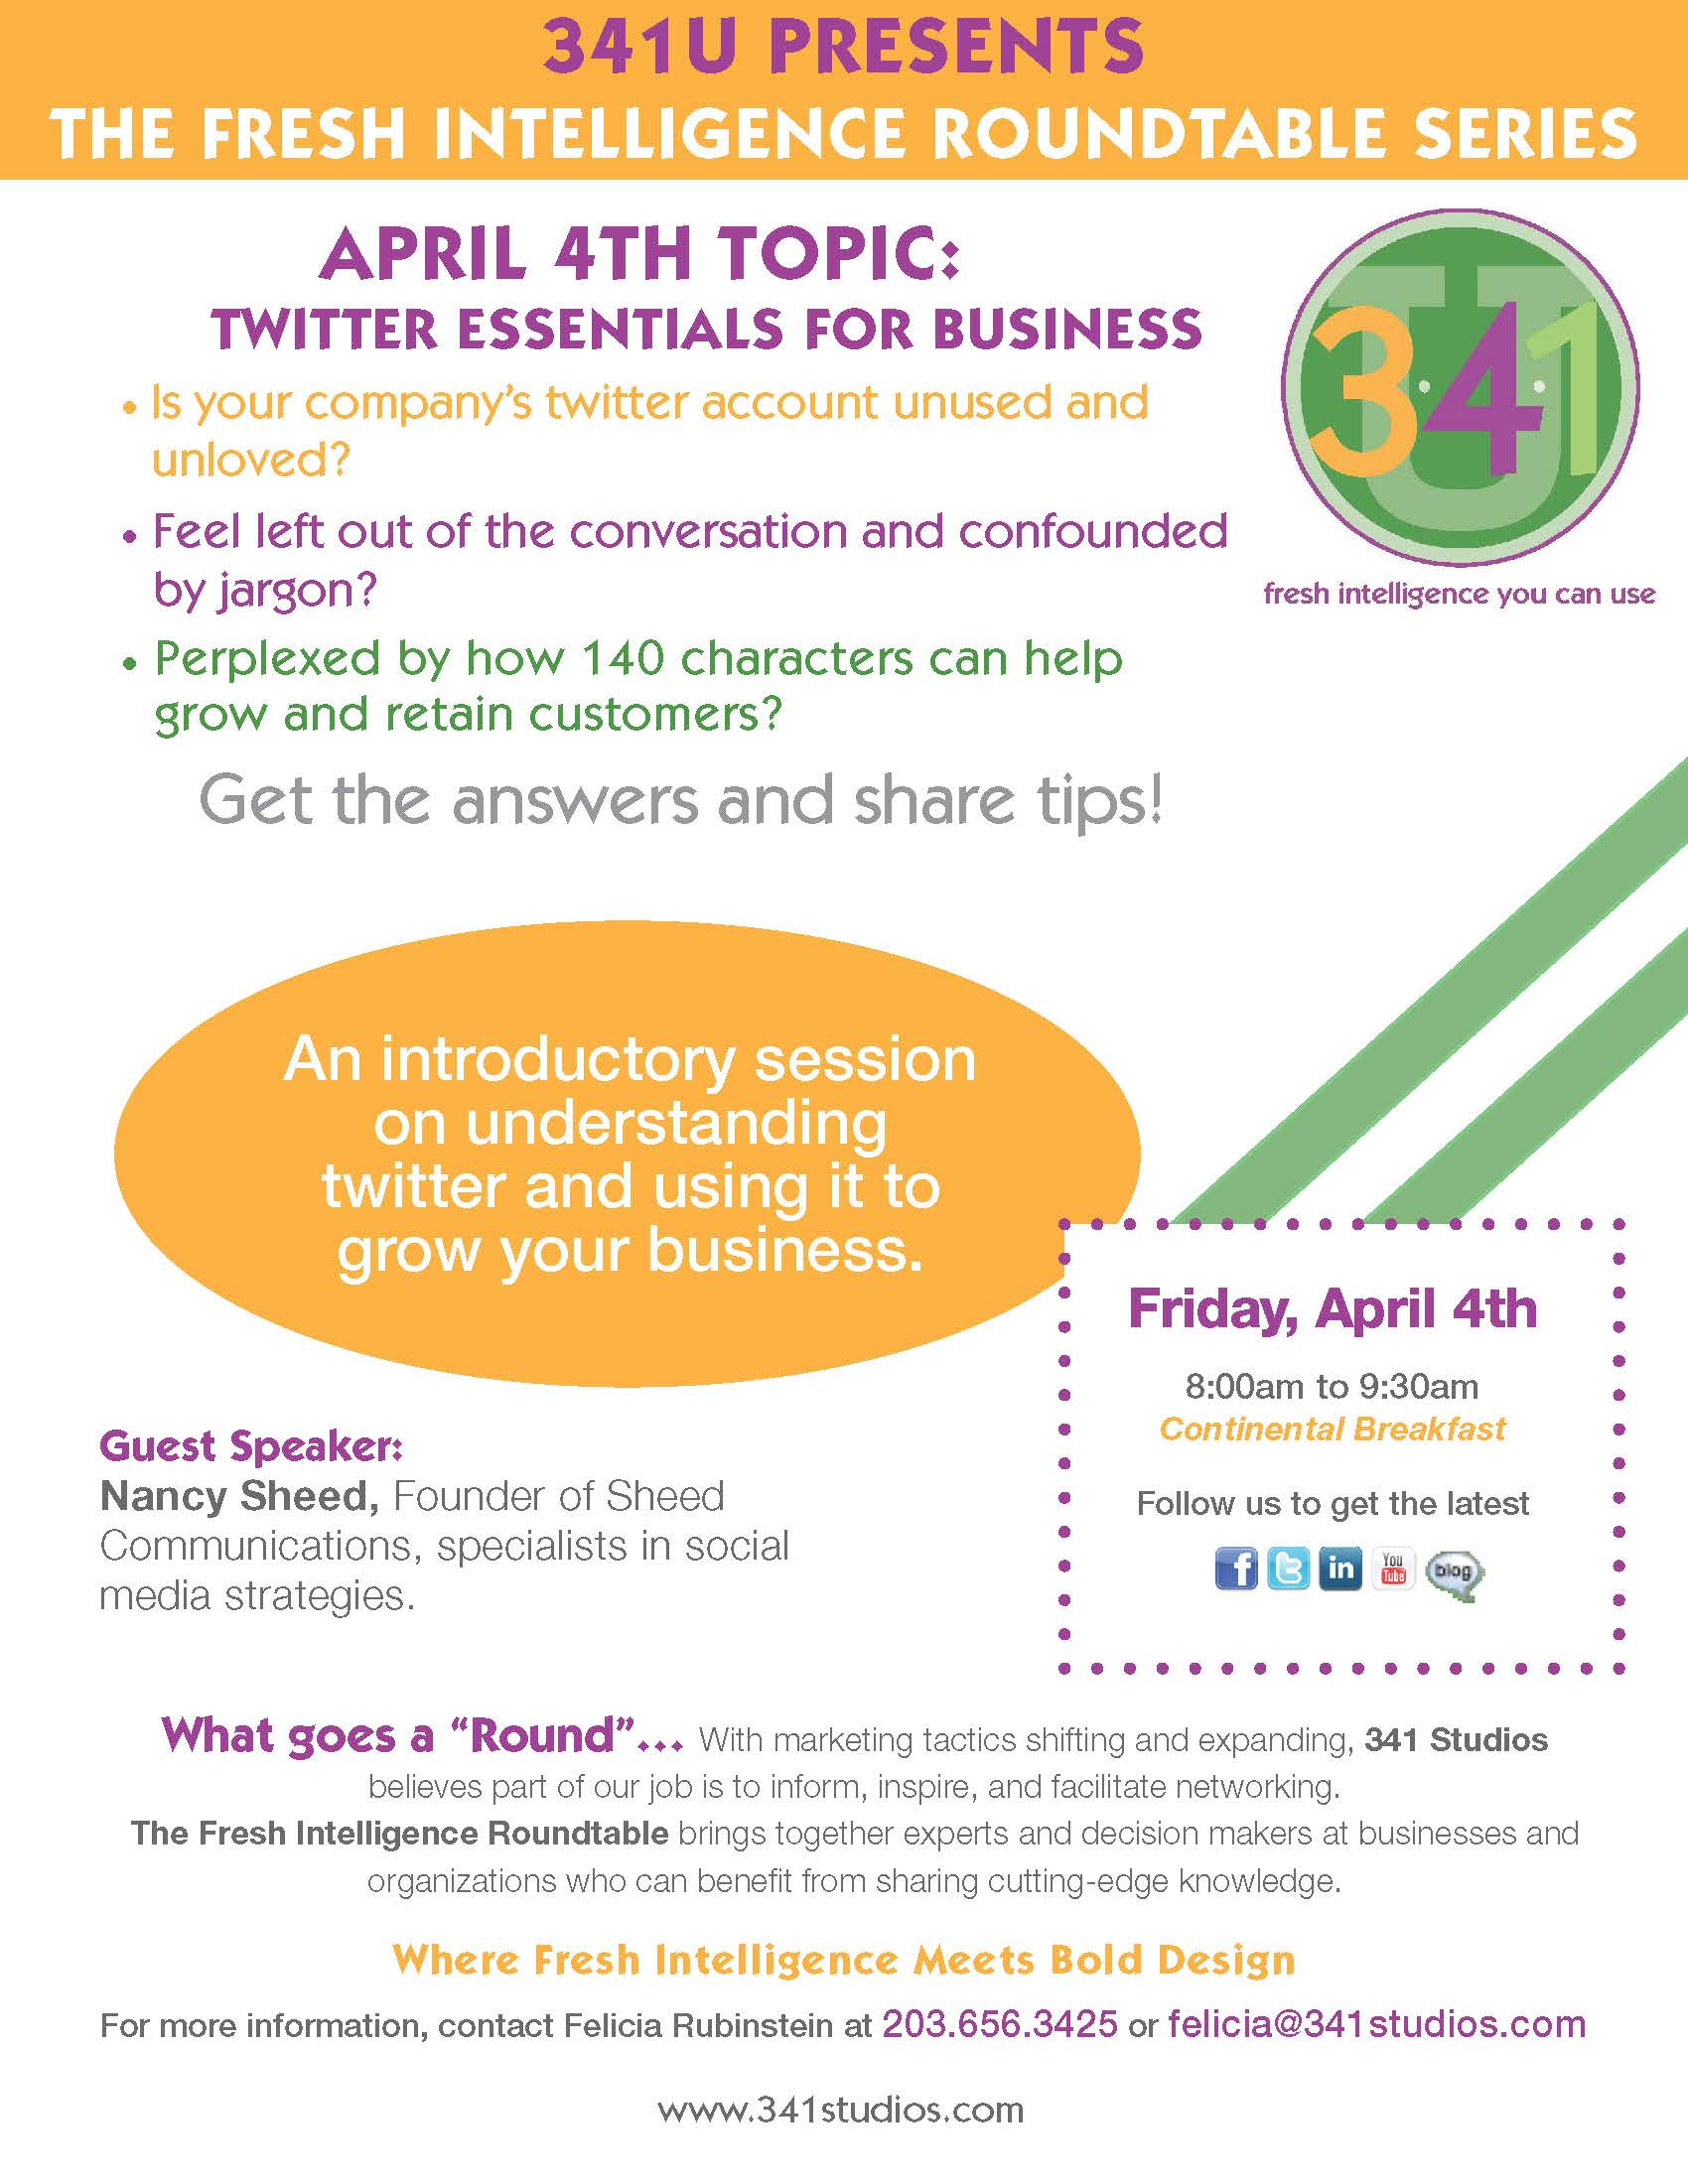 April 4-Twitter Essentials For Business